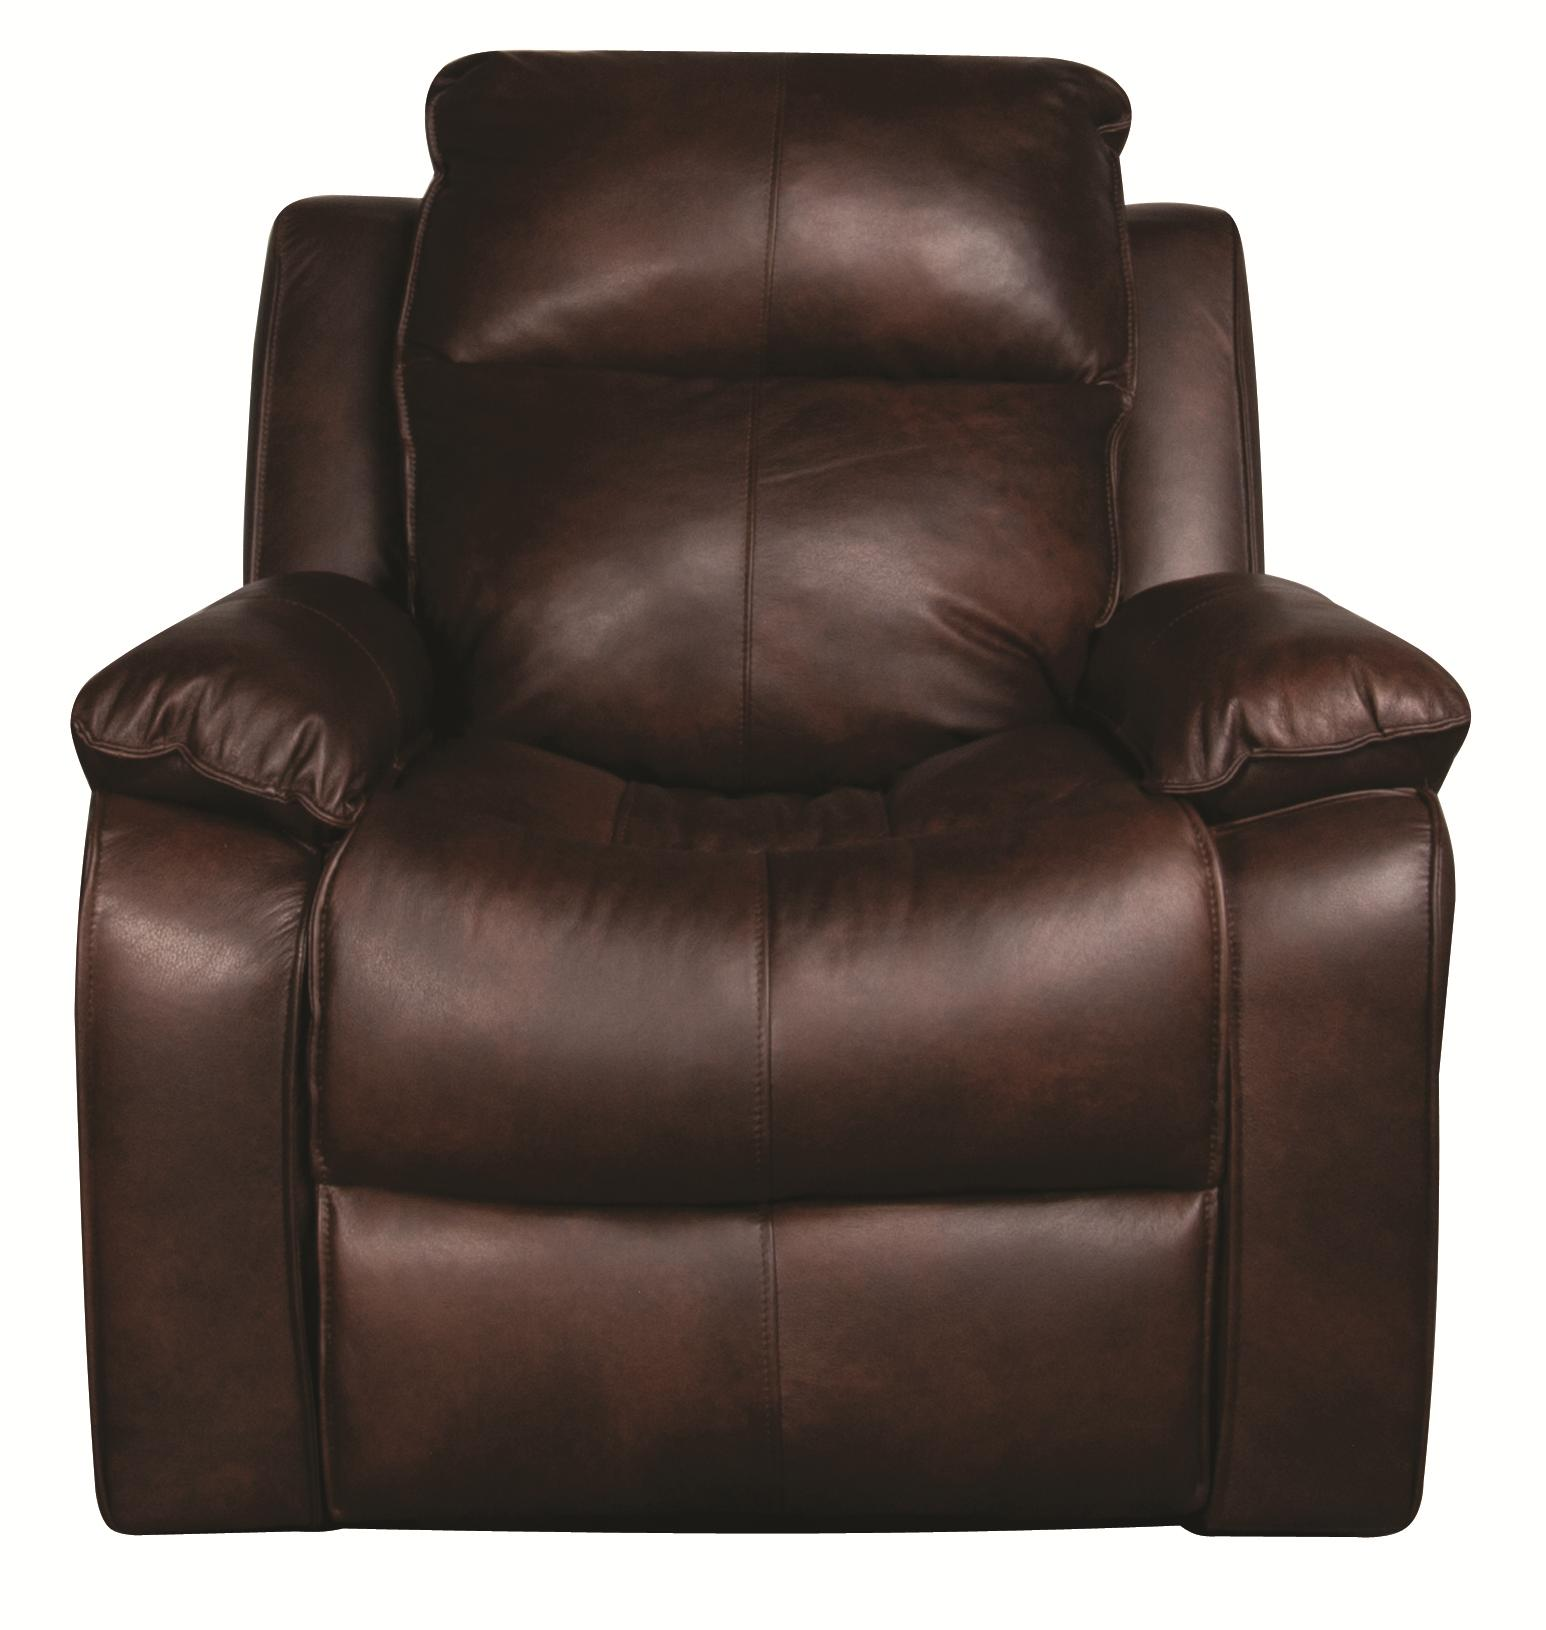 Elliston Place Darius Darius Leather-Match* Power Recliner - Item Number: 108852559